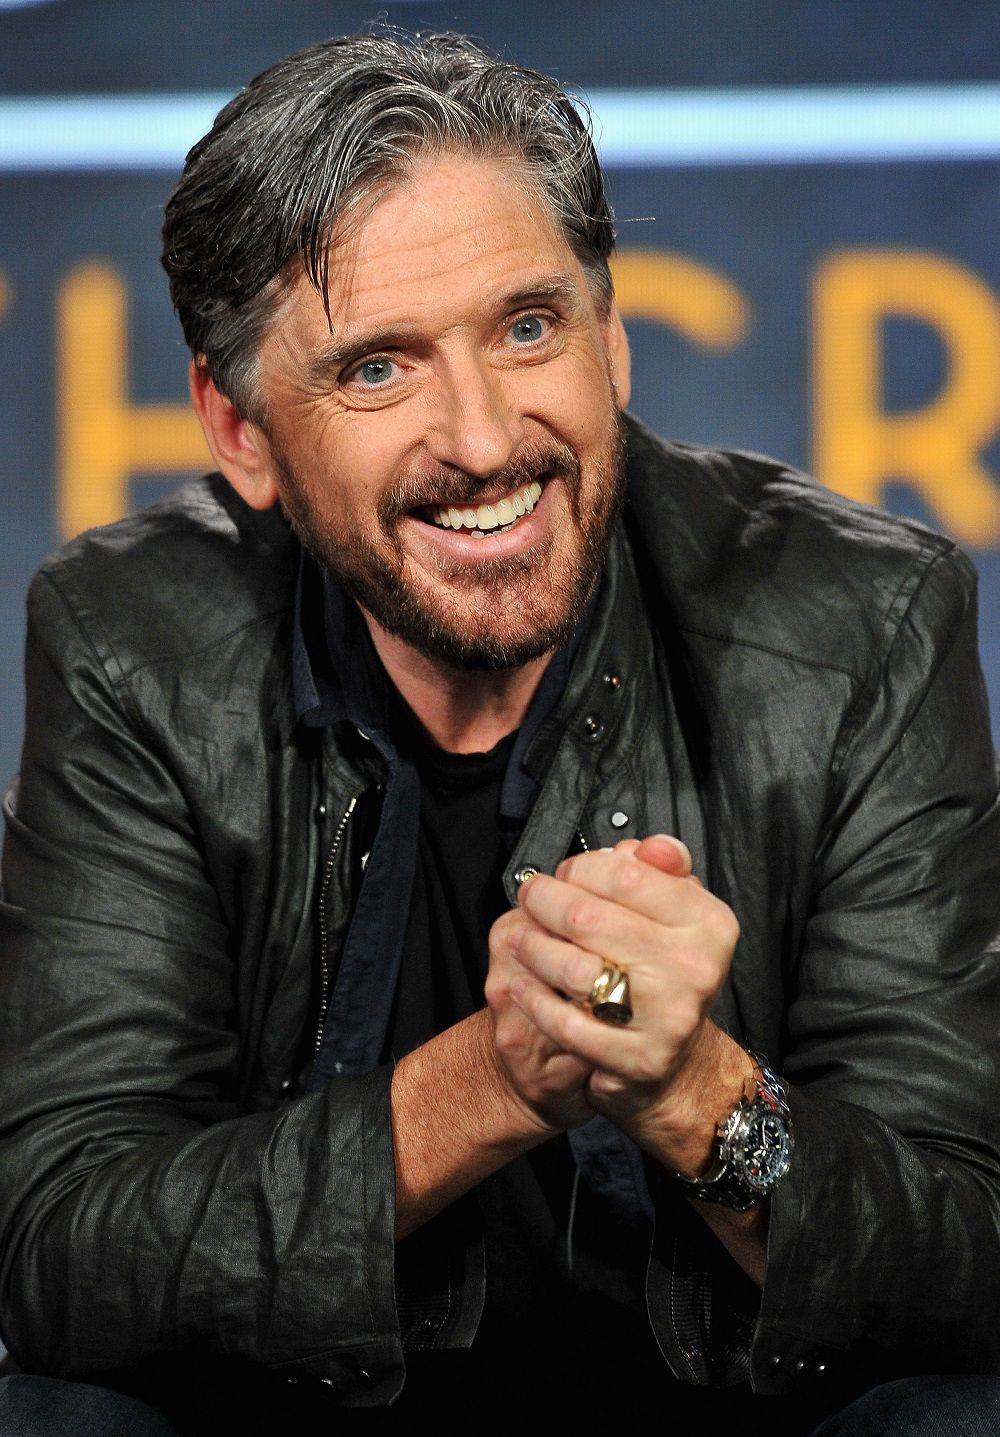 Craig Ferguson speaks onstage during the Television Critics Association Press Tour on January 6, 2016, in Pasadena, California.  (Photo by Jerod Harris/Getty Images